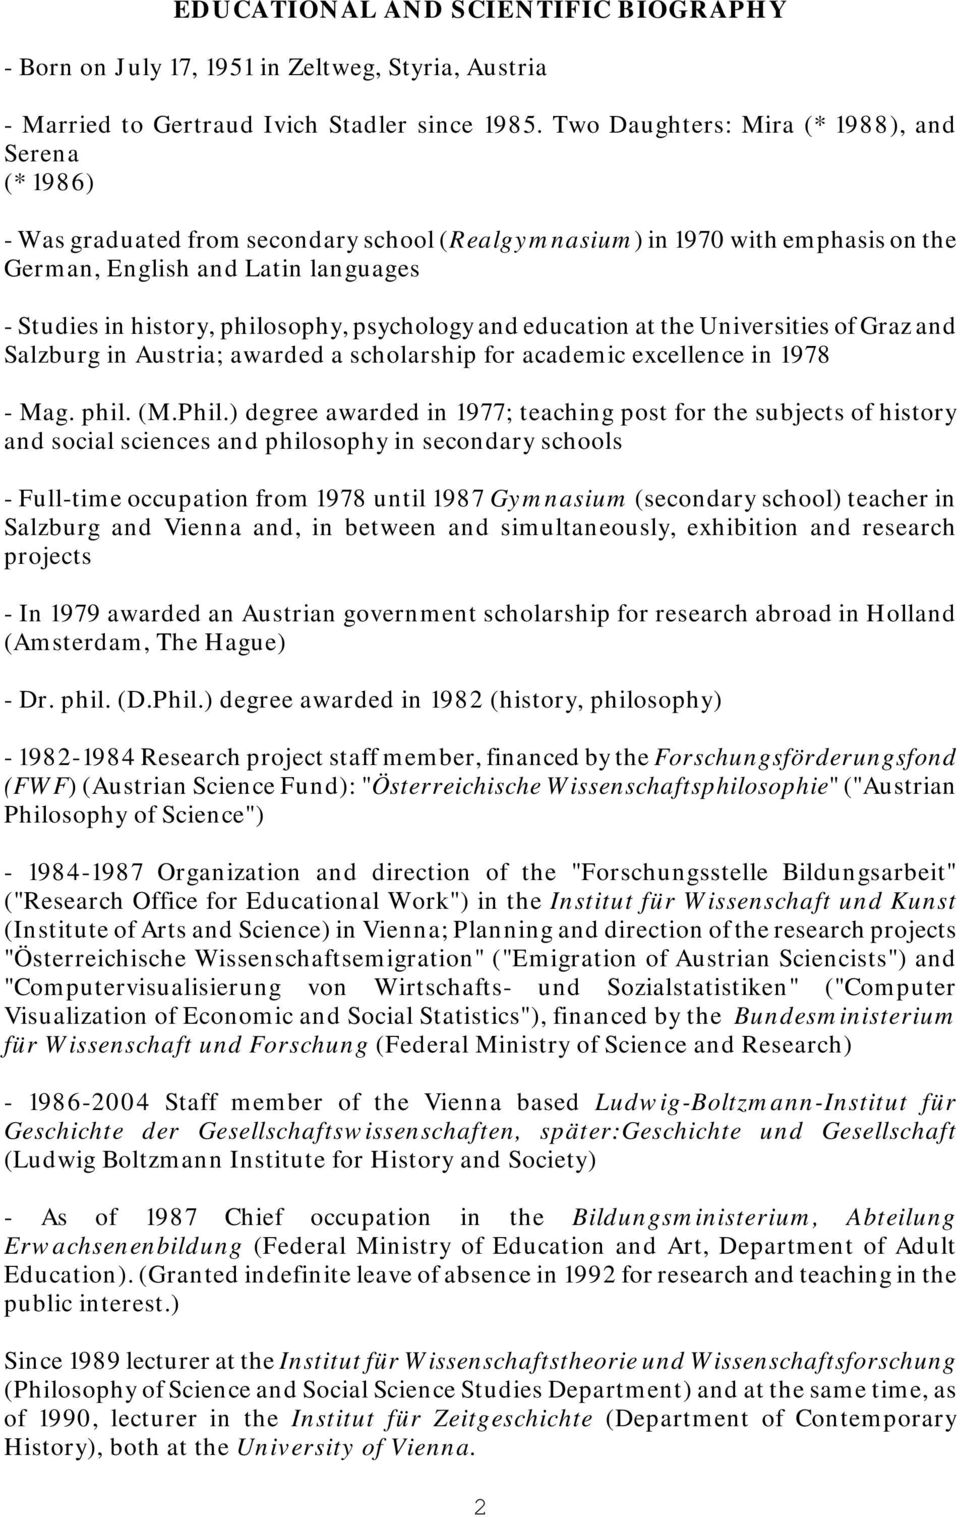 philosophy, psychology and education at the Universities of Graz and Salzburg in Austria; awarded a scholarship for academic excellence in 1978 - Mag. phil. (M.Phil.